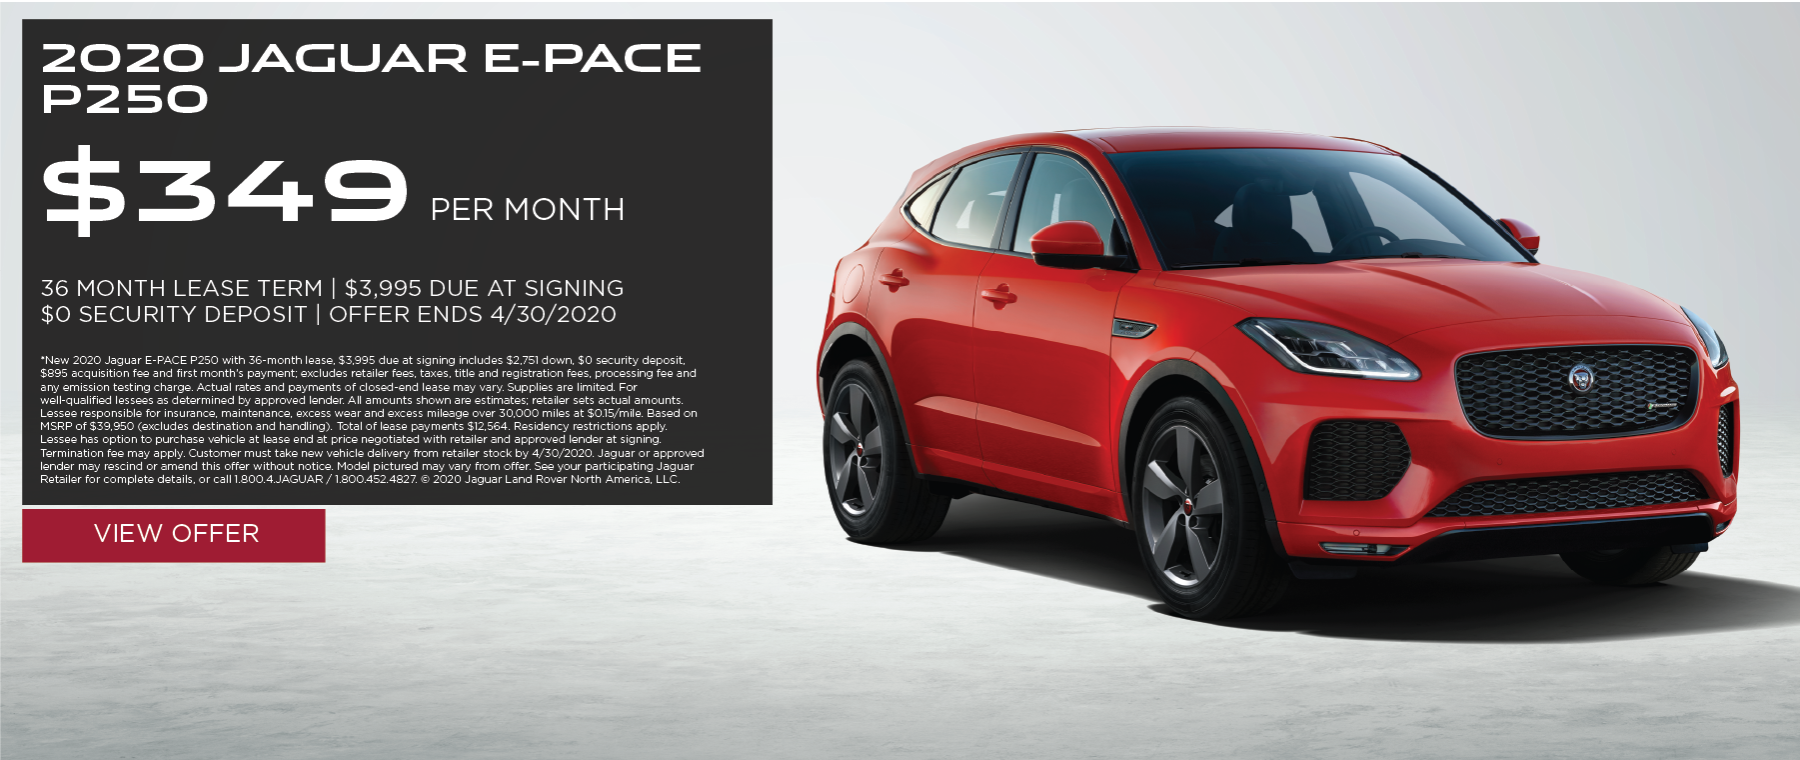 2020 JAGUAR E-PACE P250. $349 PER MONTH. 36 MONTH LEASE TERM. $3,995 CASH DUE AT SIGNING. $0 SECURITY DEPOSIT. 10,000 MILES PER YEAR. OFFER ENDS 4/30/2020.